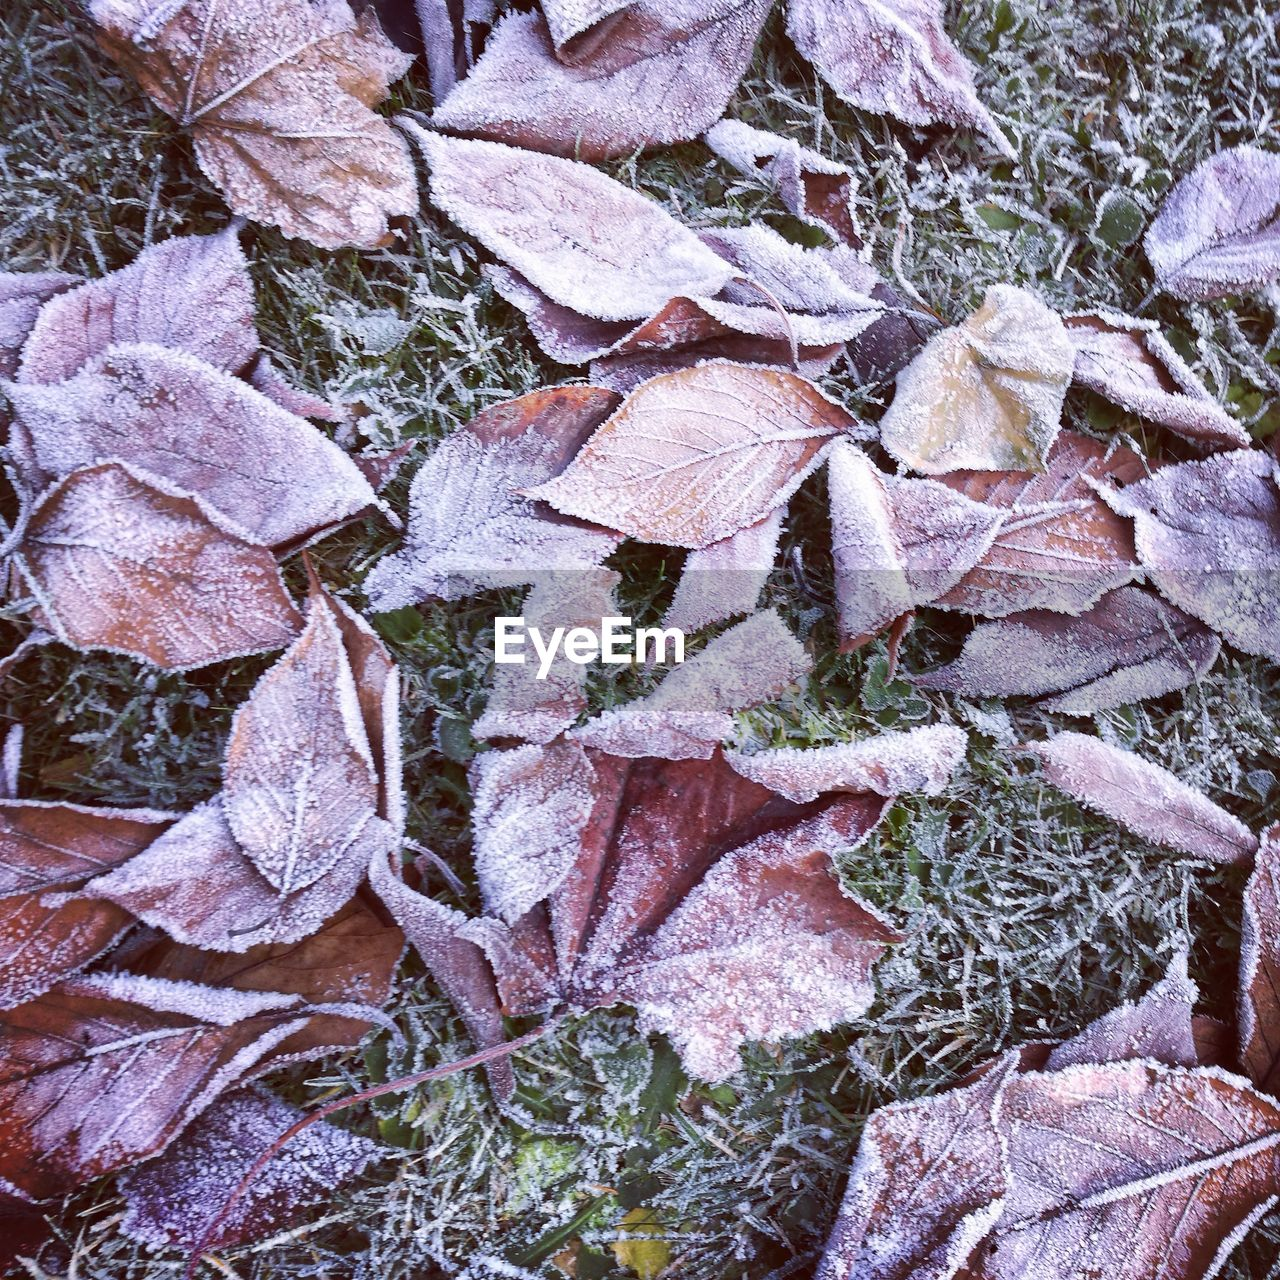 nature, cold temperature, winter, no people, leaf, outdoors, snow, autumn, frozen, full frame, day, plant, beauty in nature, backgrounds, fragility, close-up